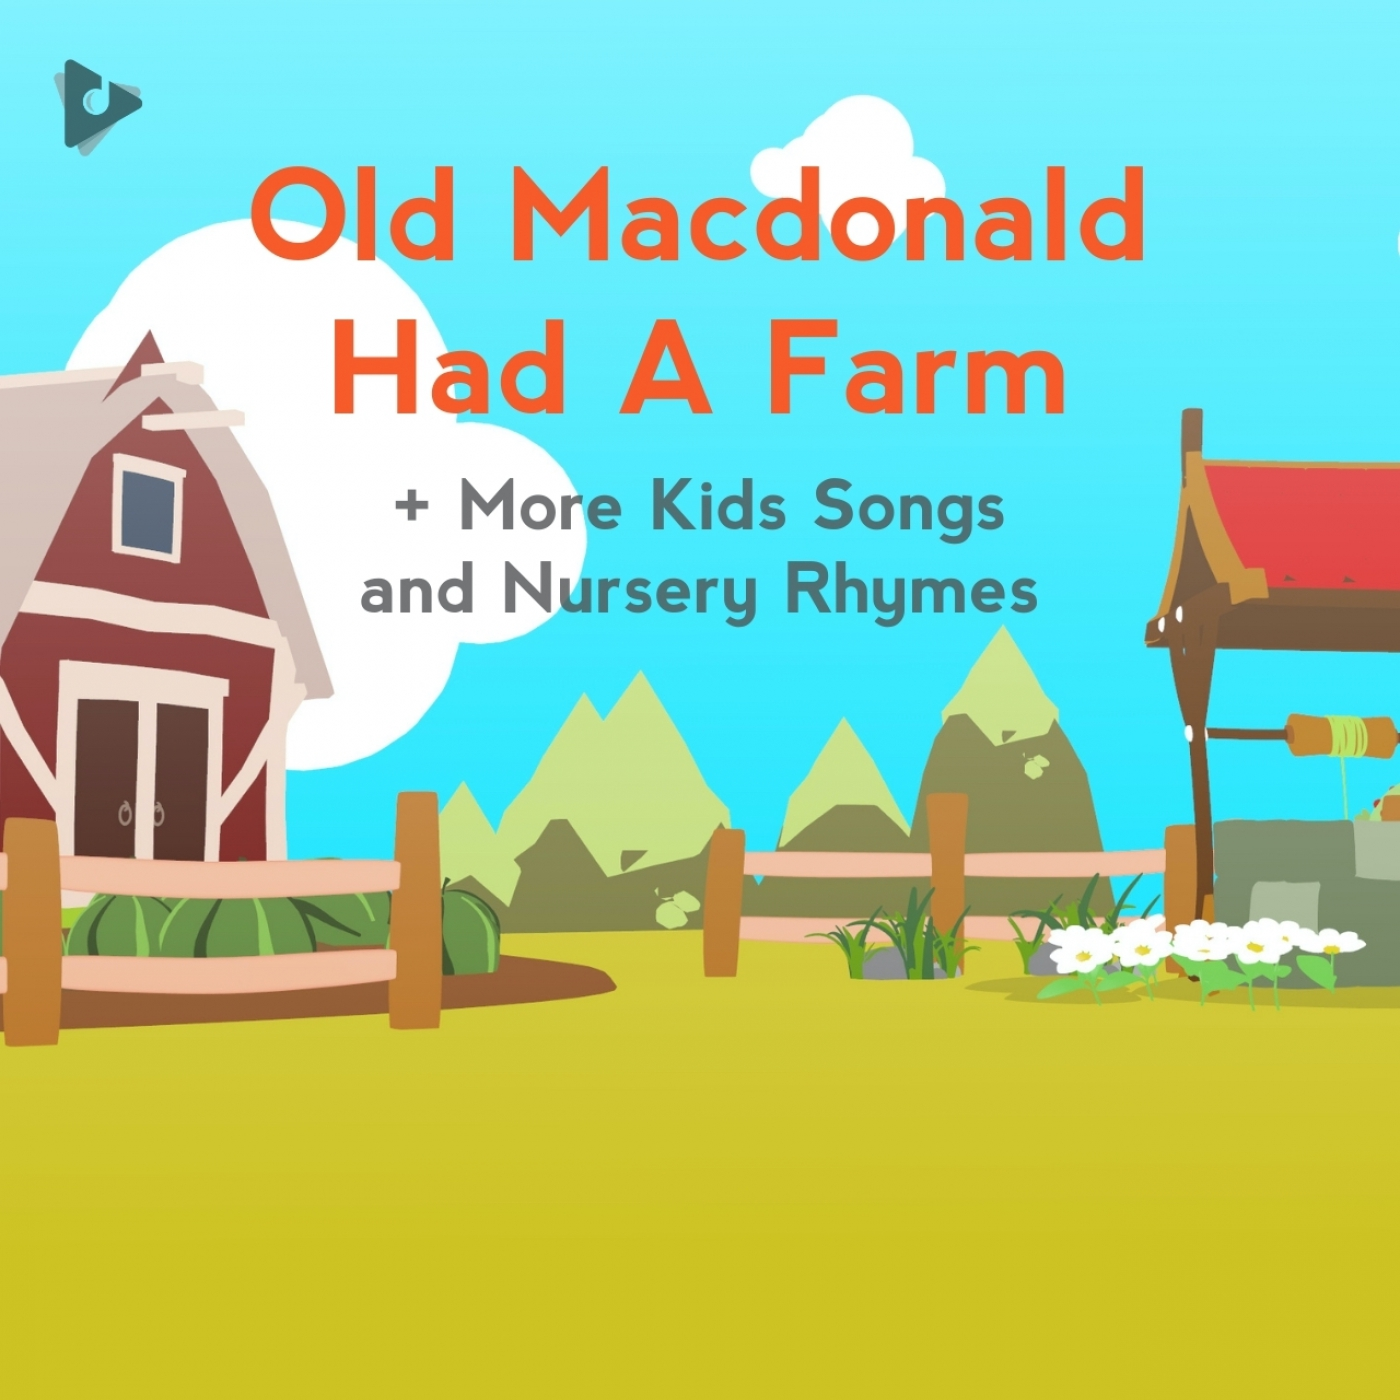 Old Macdonald Had A Farm + More Kids Songs and Nursery Rhymes